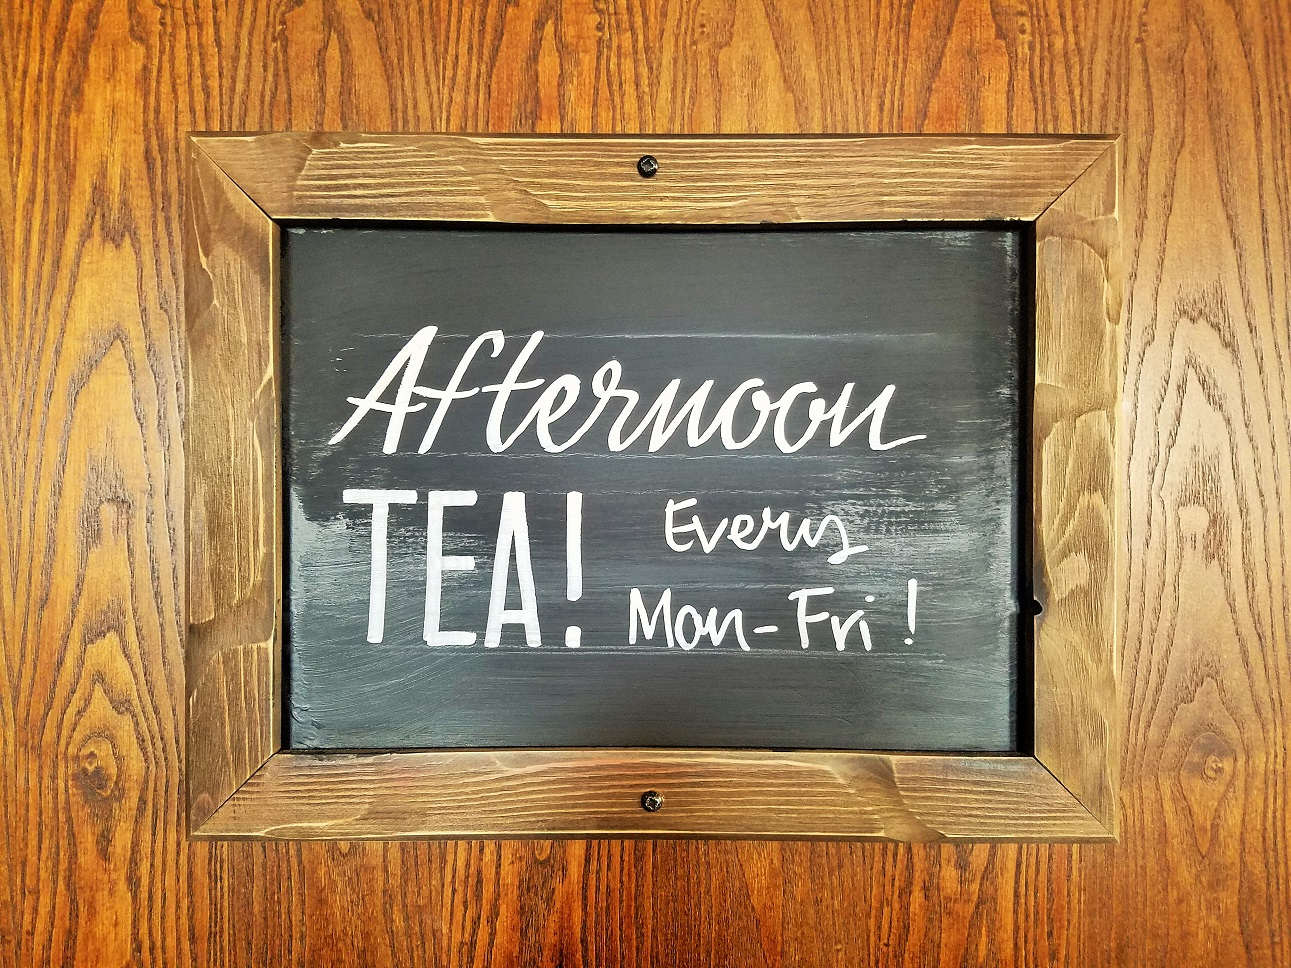 Yorkshire Afternoon Tea review - available at Dearne Valley Farm from 13th August onwards